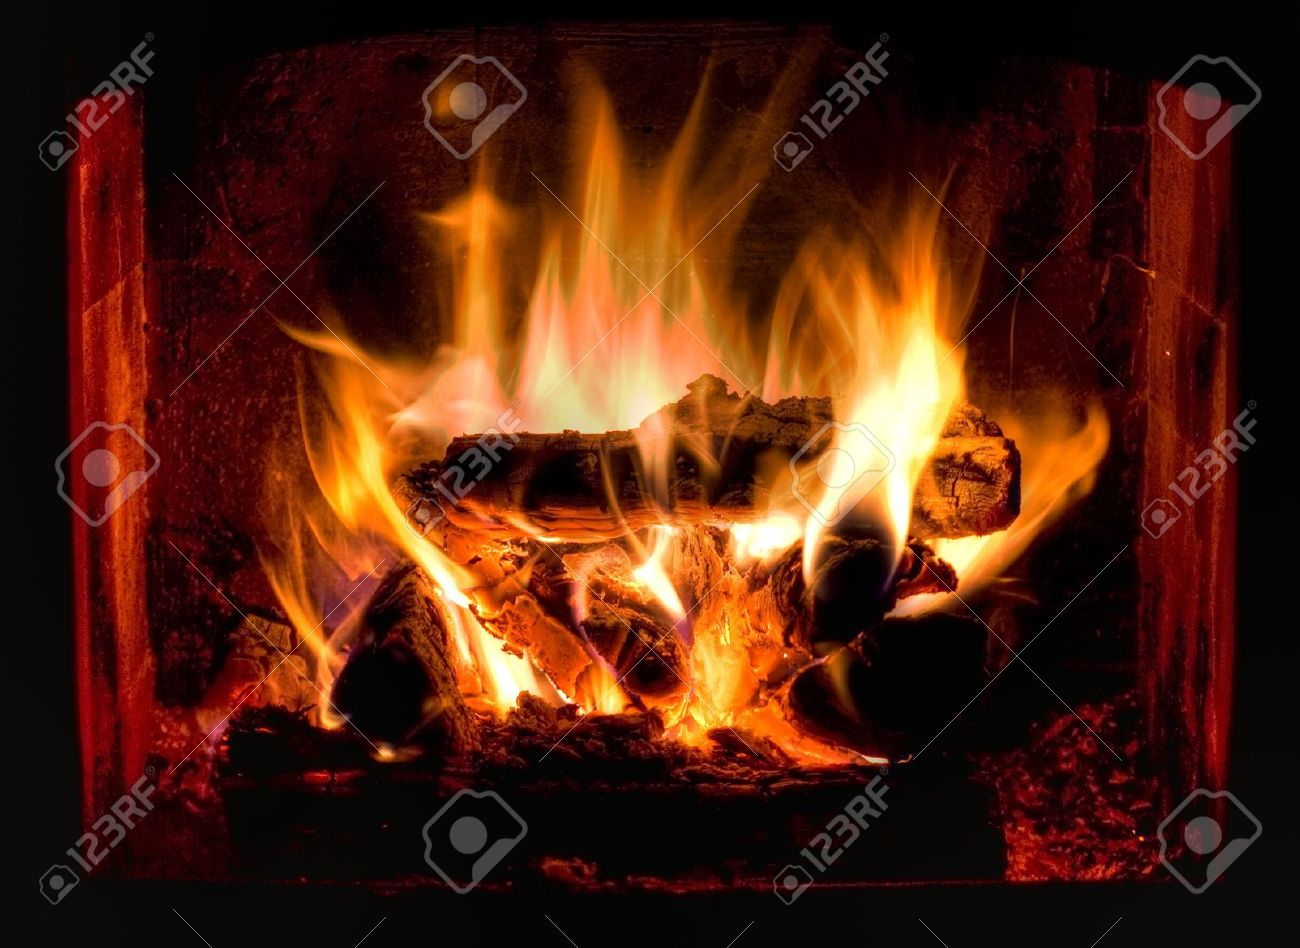 HDR Photo Of Hot And Cosy Fireplace Stock Photo, Picture And ...